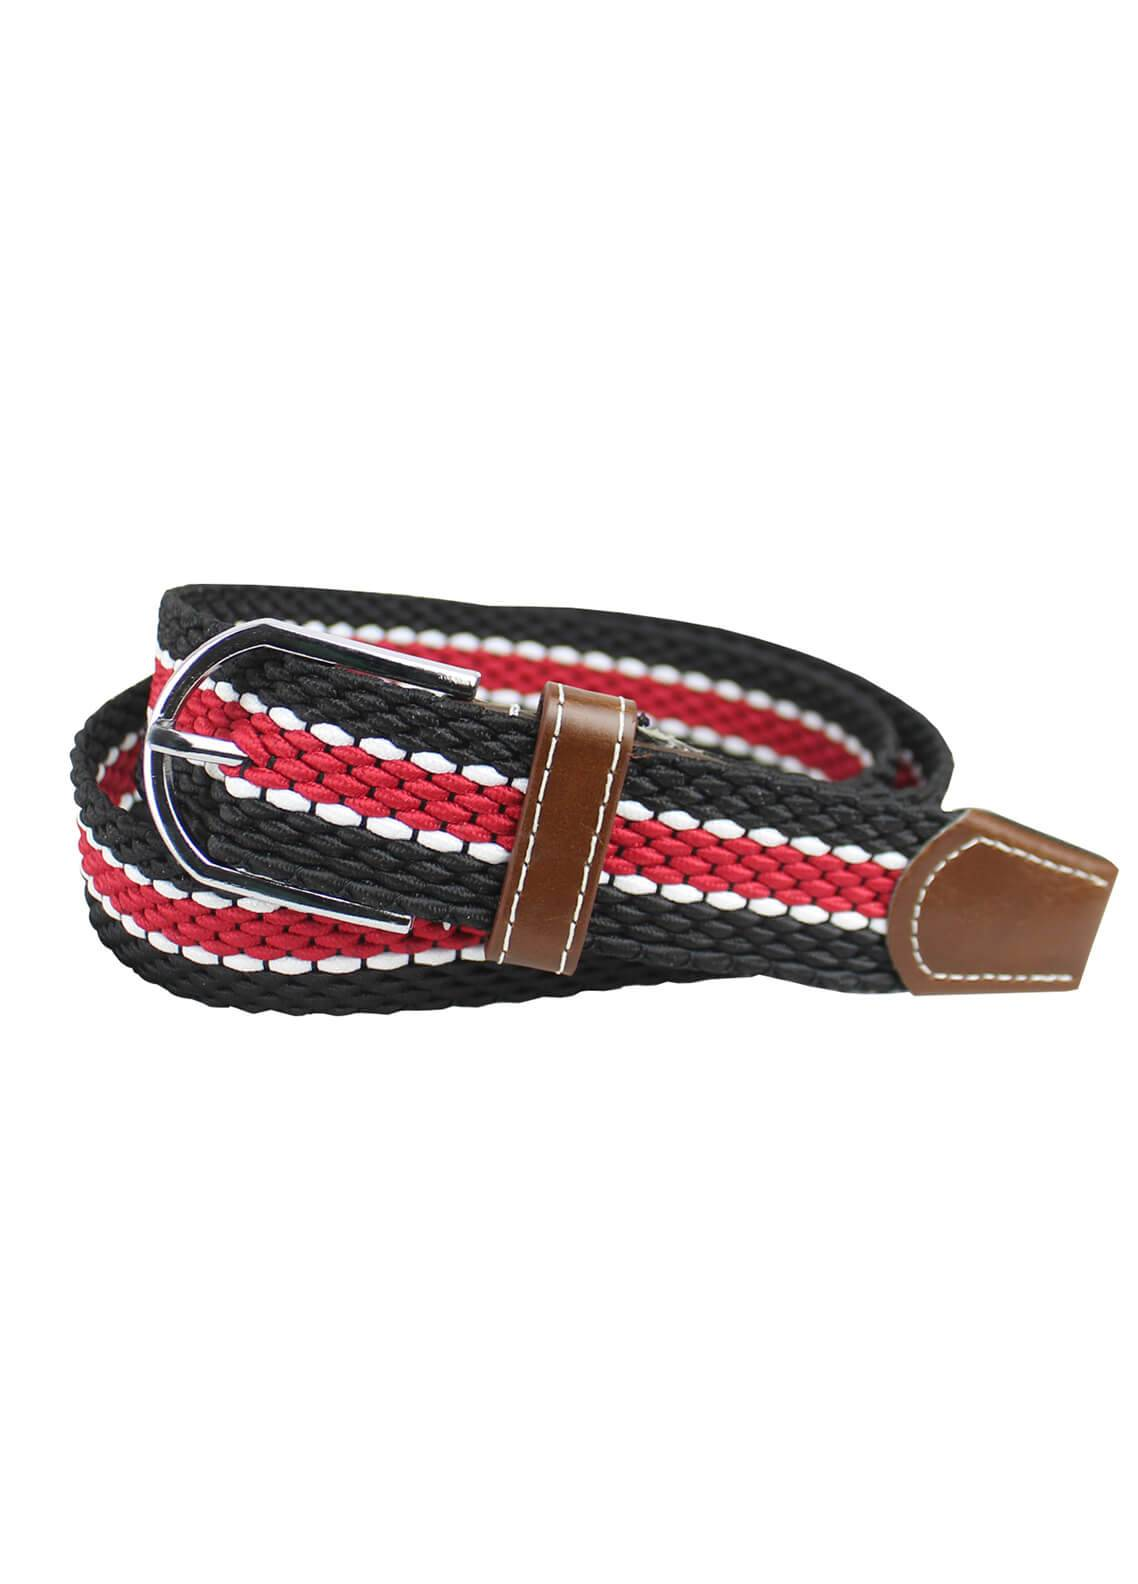 Shahzeb Saeed Textured Leather Men Belts BELT-136 Red & Black - Casual Accessories